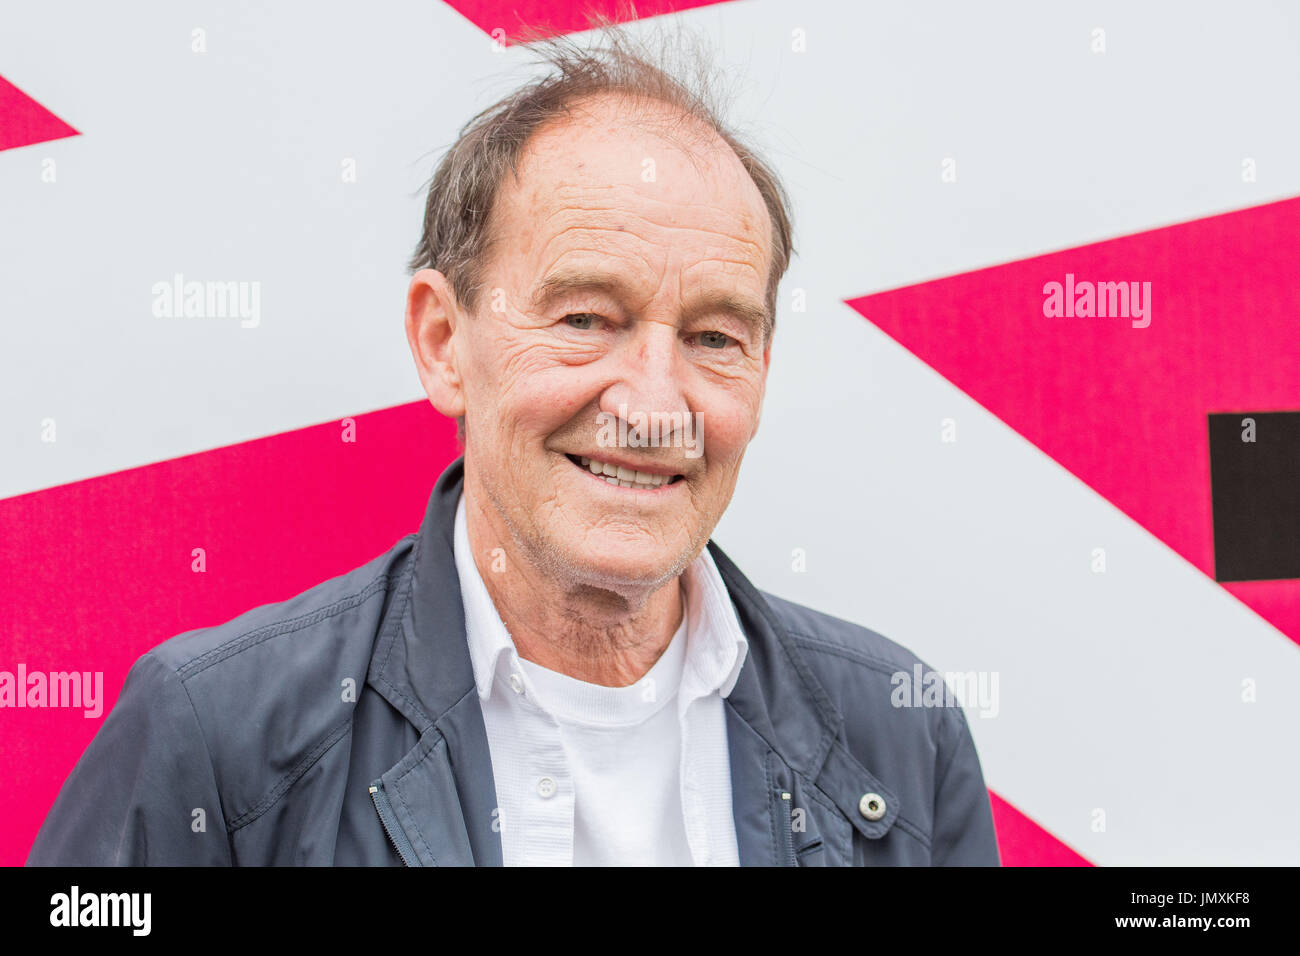 WWW.IANGEORGESONPHOTOGRAPHY.CO.UK Picture: RED CARPET Filmhouse, David Hayman and writer peter Mcdougall at the premier of A sense of freedom - Stock Image